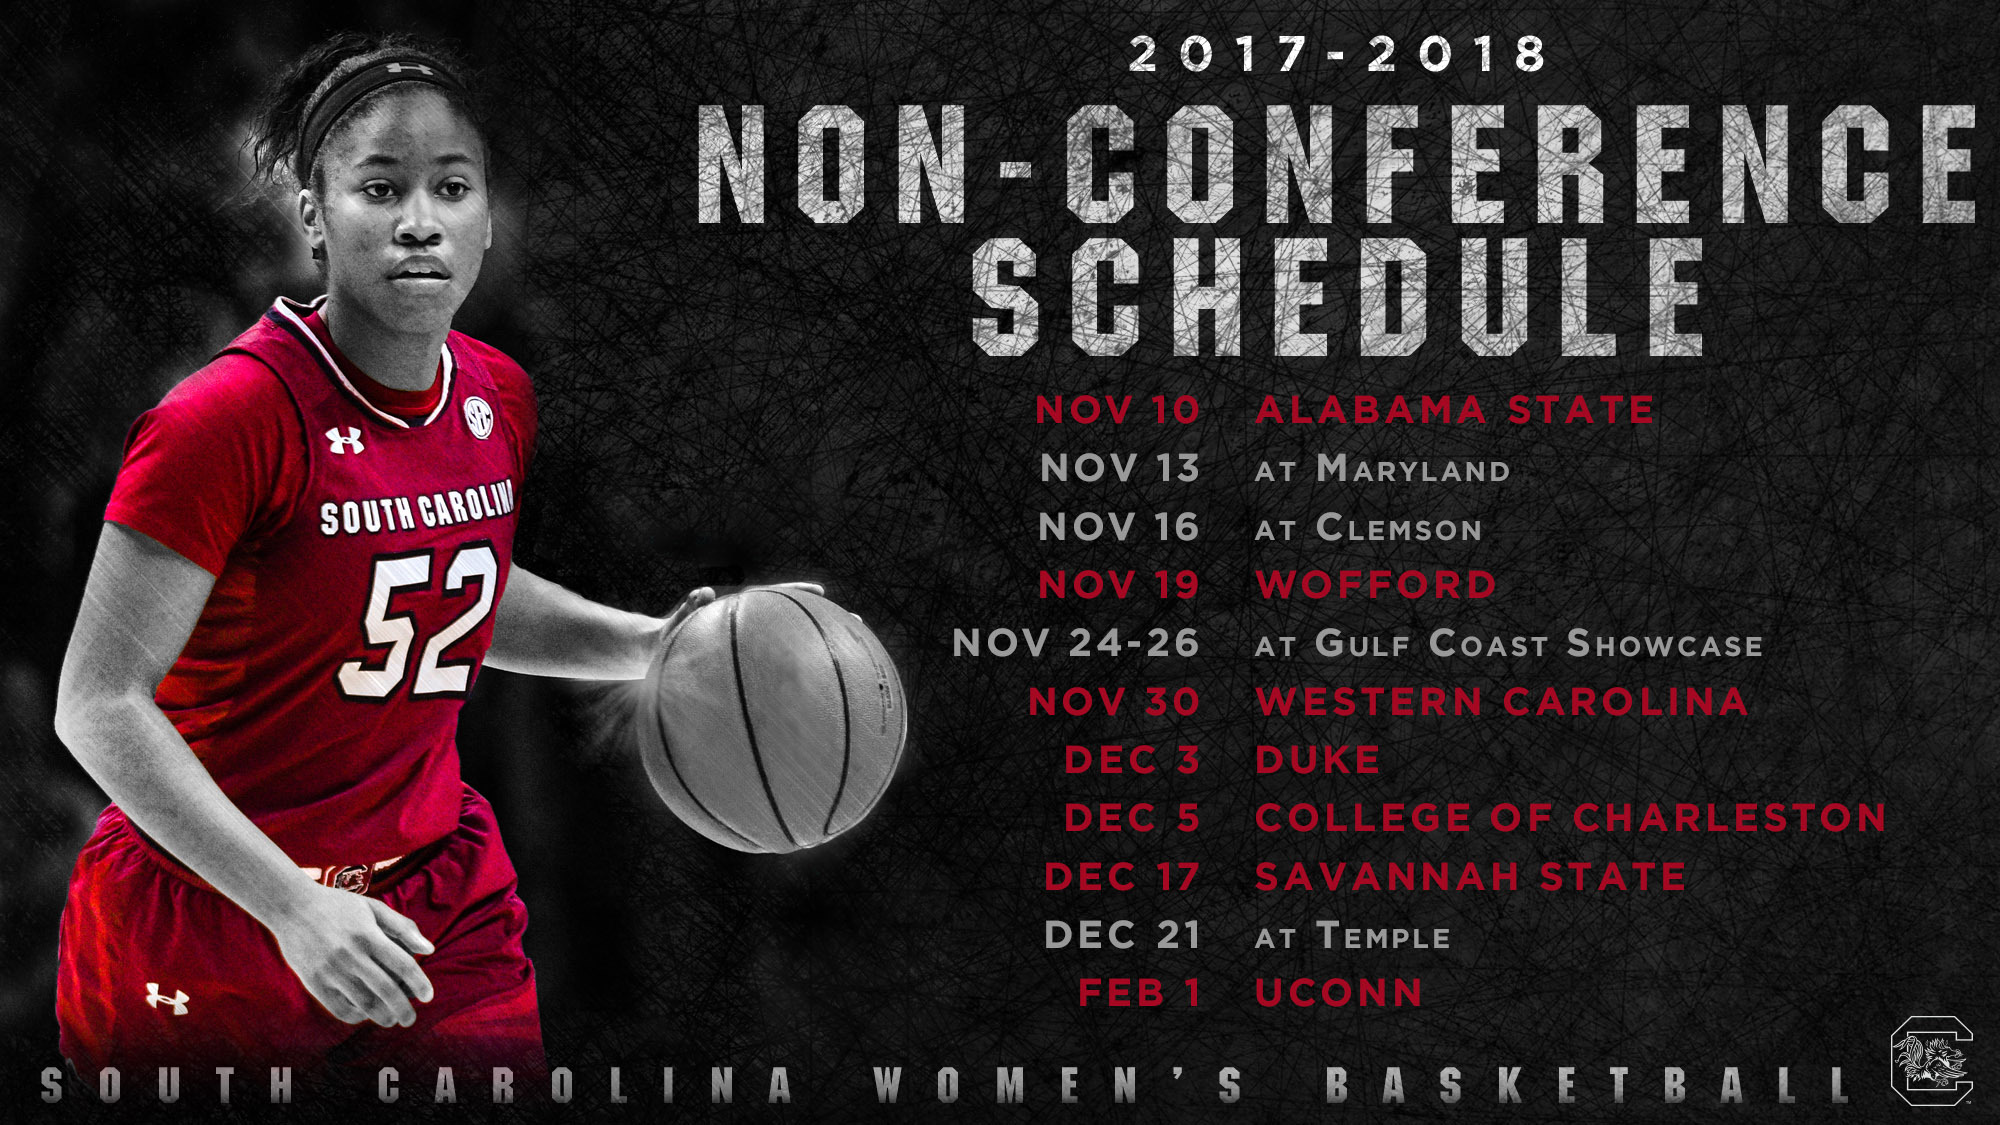 staley announces non-conference schedule - university of south